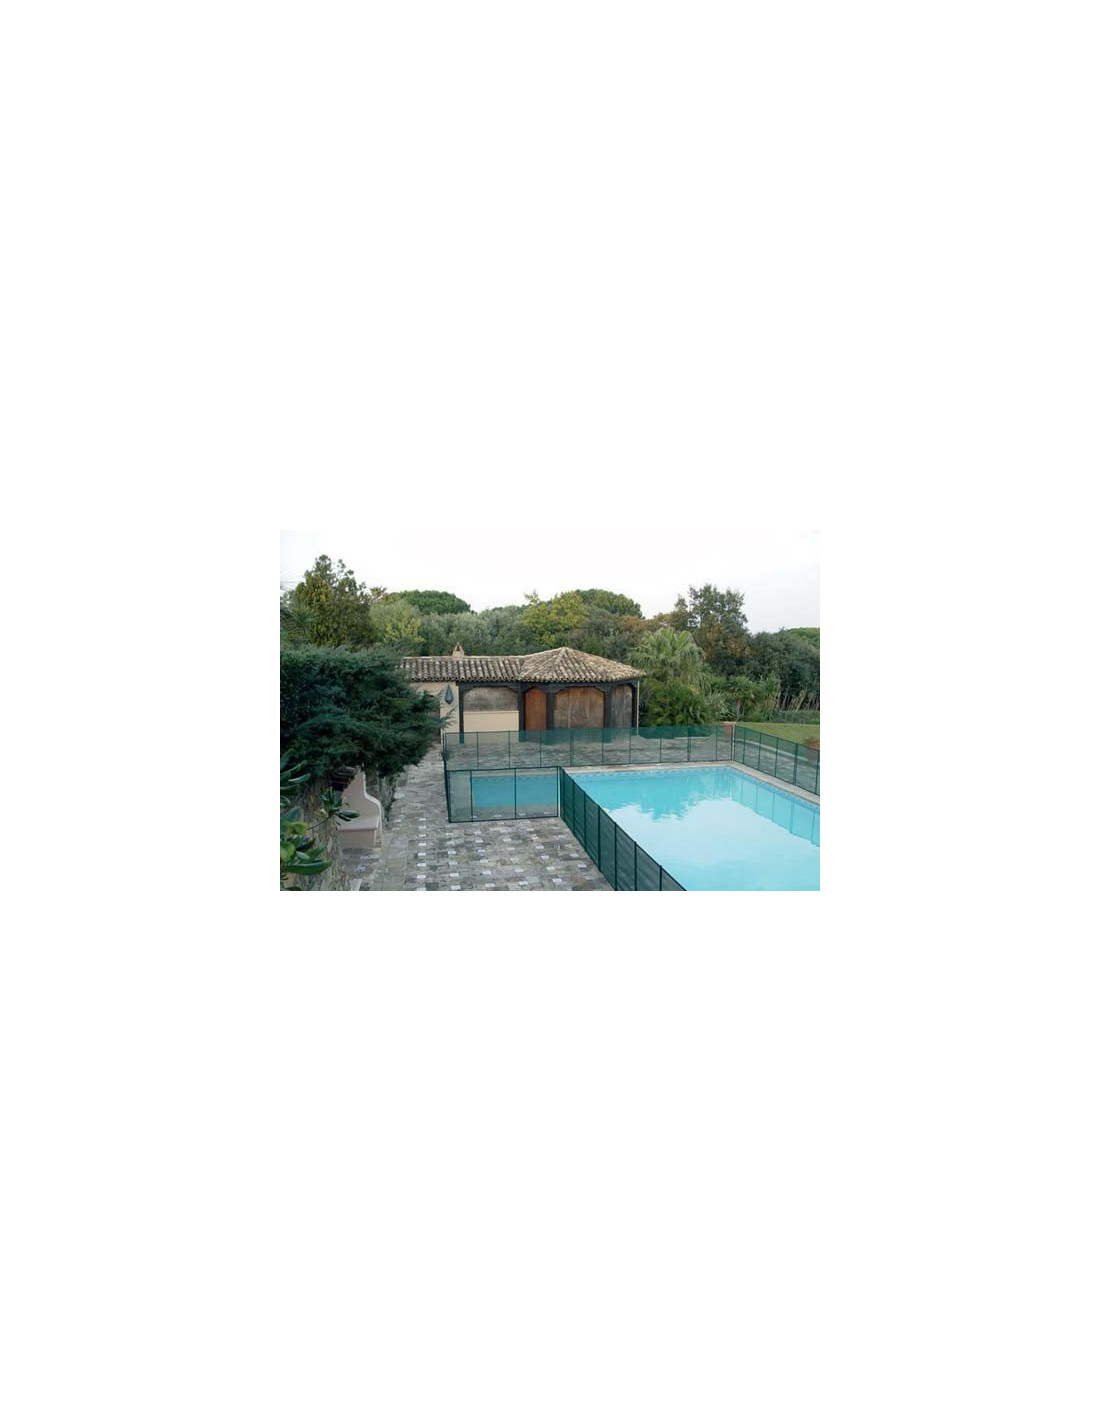 Barriere de piscine beethoven 20171031092926 for Barriere beethoven